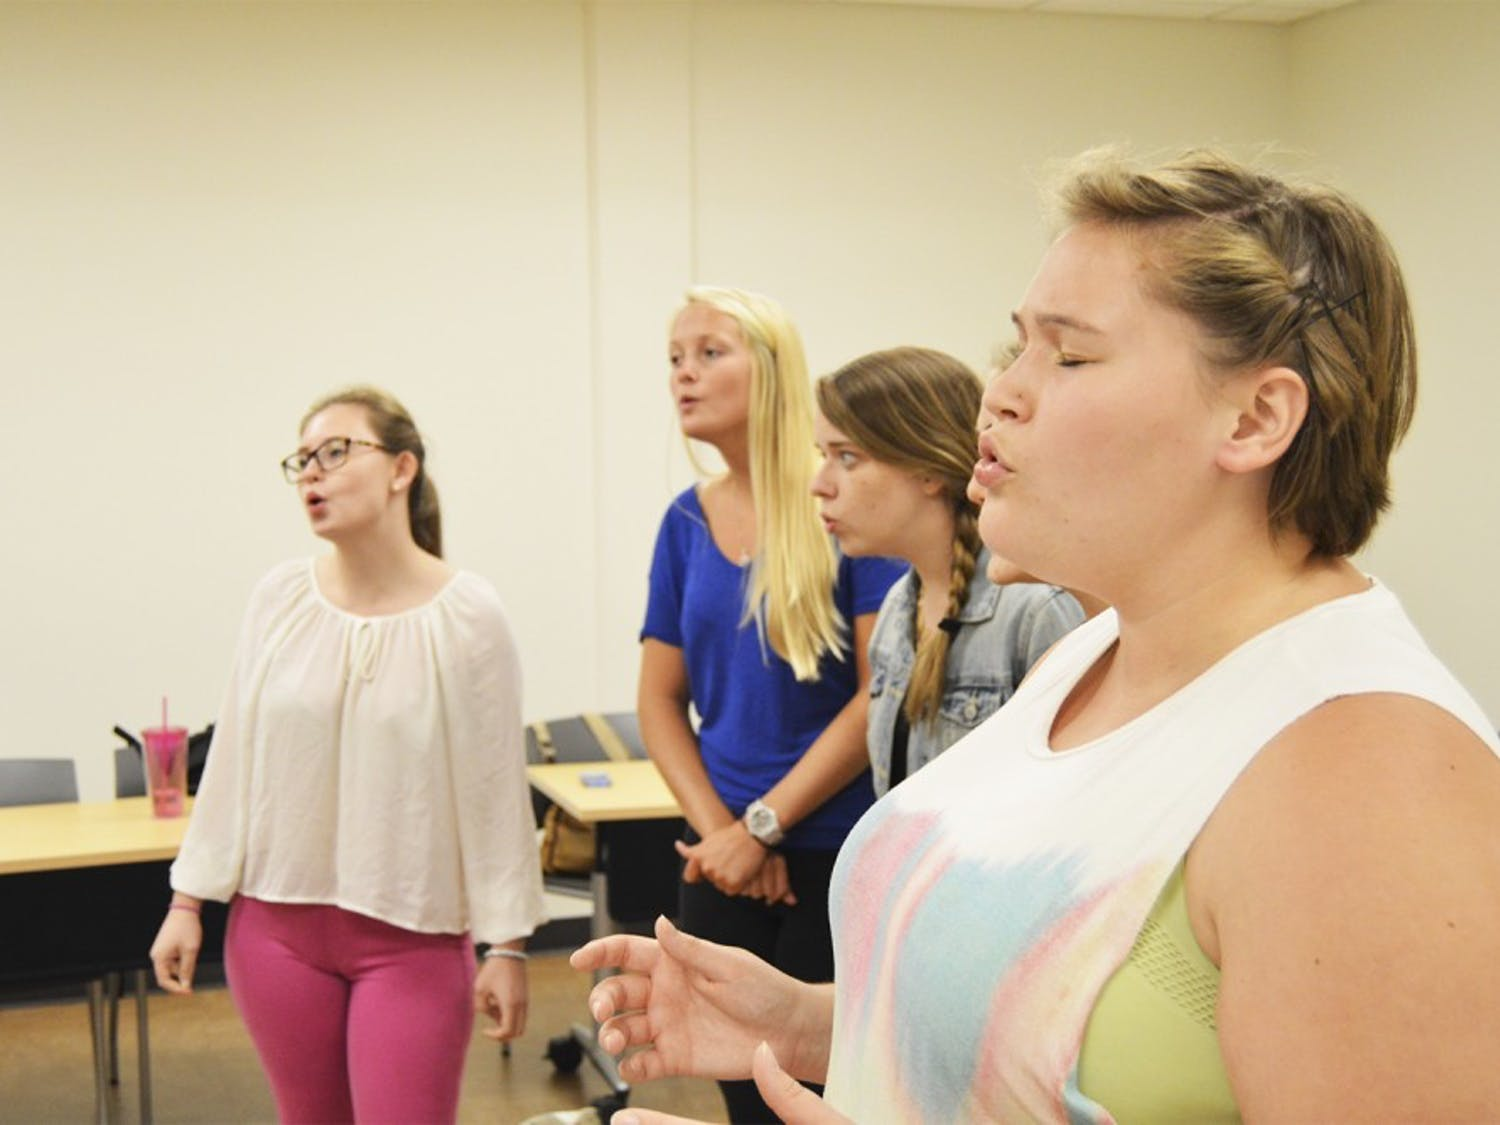 """(From right) Valerie Sauer, Susanna Trotter, Taylor Lingle and Katie Arney practice their rendition of """"Love Runs Out"""" by One Republic in preparation for Monday's Sunset Serenade."""